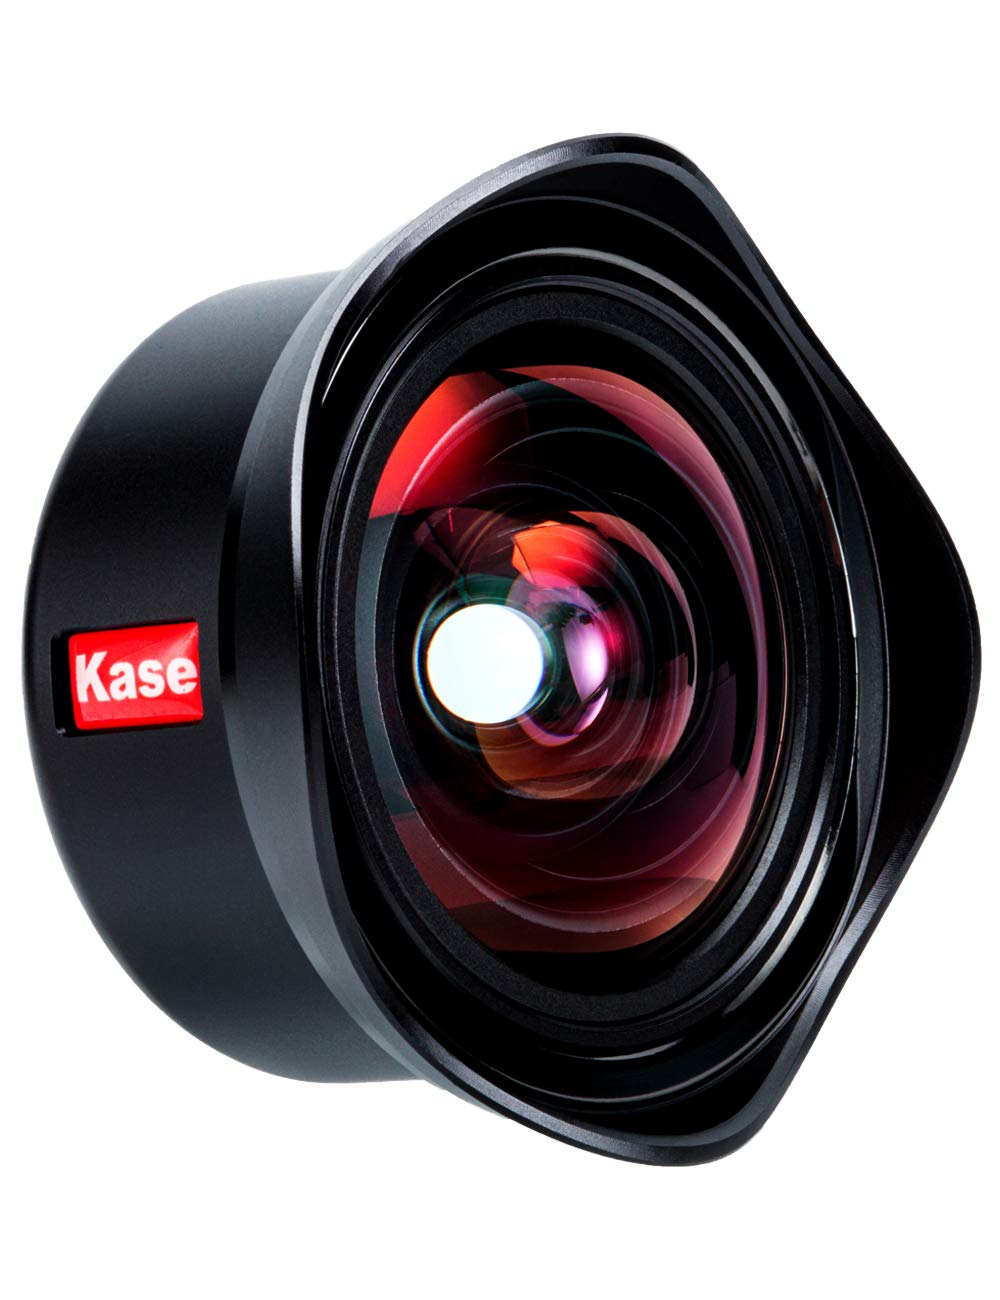 Kase 12mm Ultra-Wide Aspherical Lens 122°Professional HD Camera Lens Compatible with iPhone Samsung Android Most Smartphones and Tablets by kase